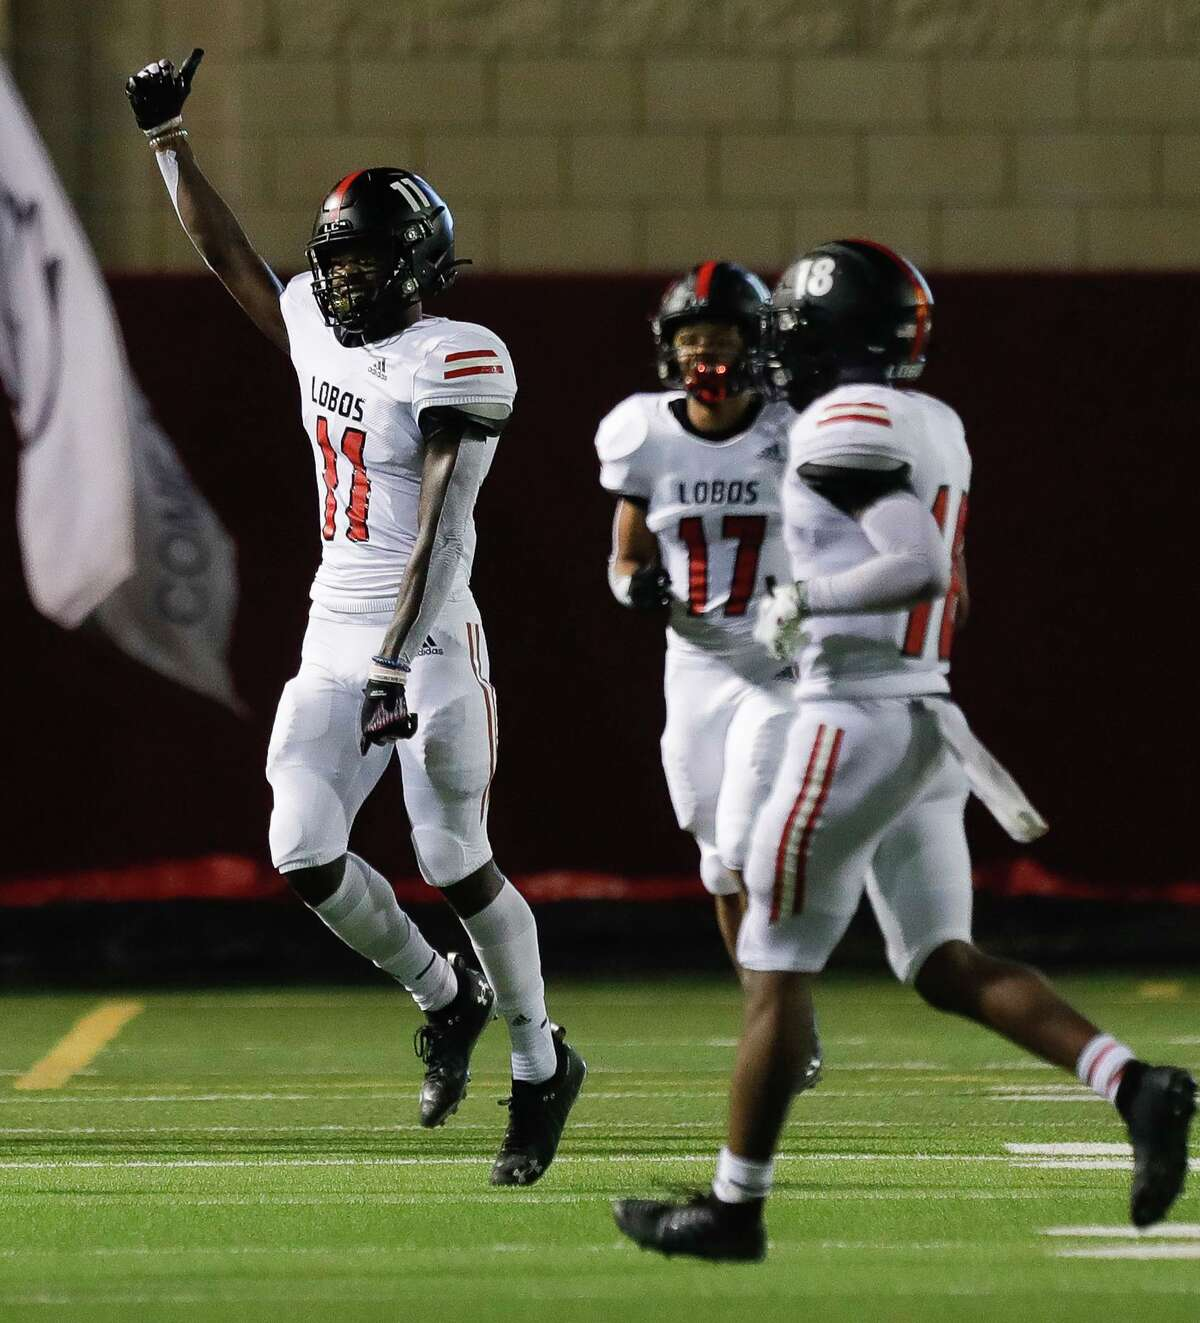 Langham Creek wide receiver Jaquaize Pettaway (11) reacts after scoring a 74-yard touchdown during the second quarter of a non-district high school football game at Woodforest Bank Stadium, Thursday, Aug. 26, 2021, in Shenandoah.